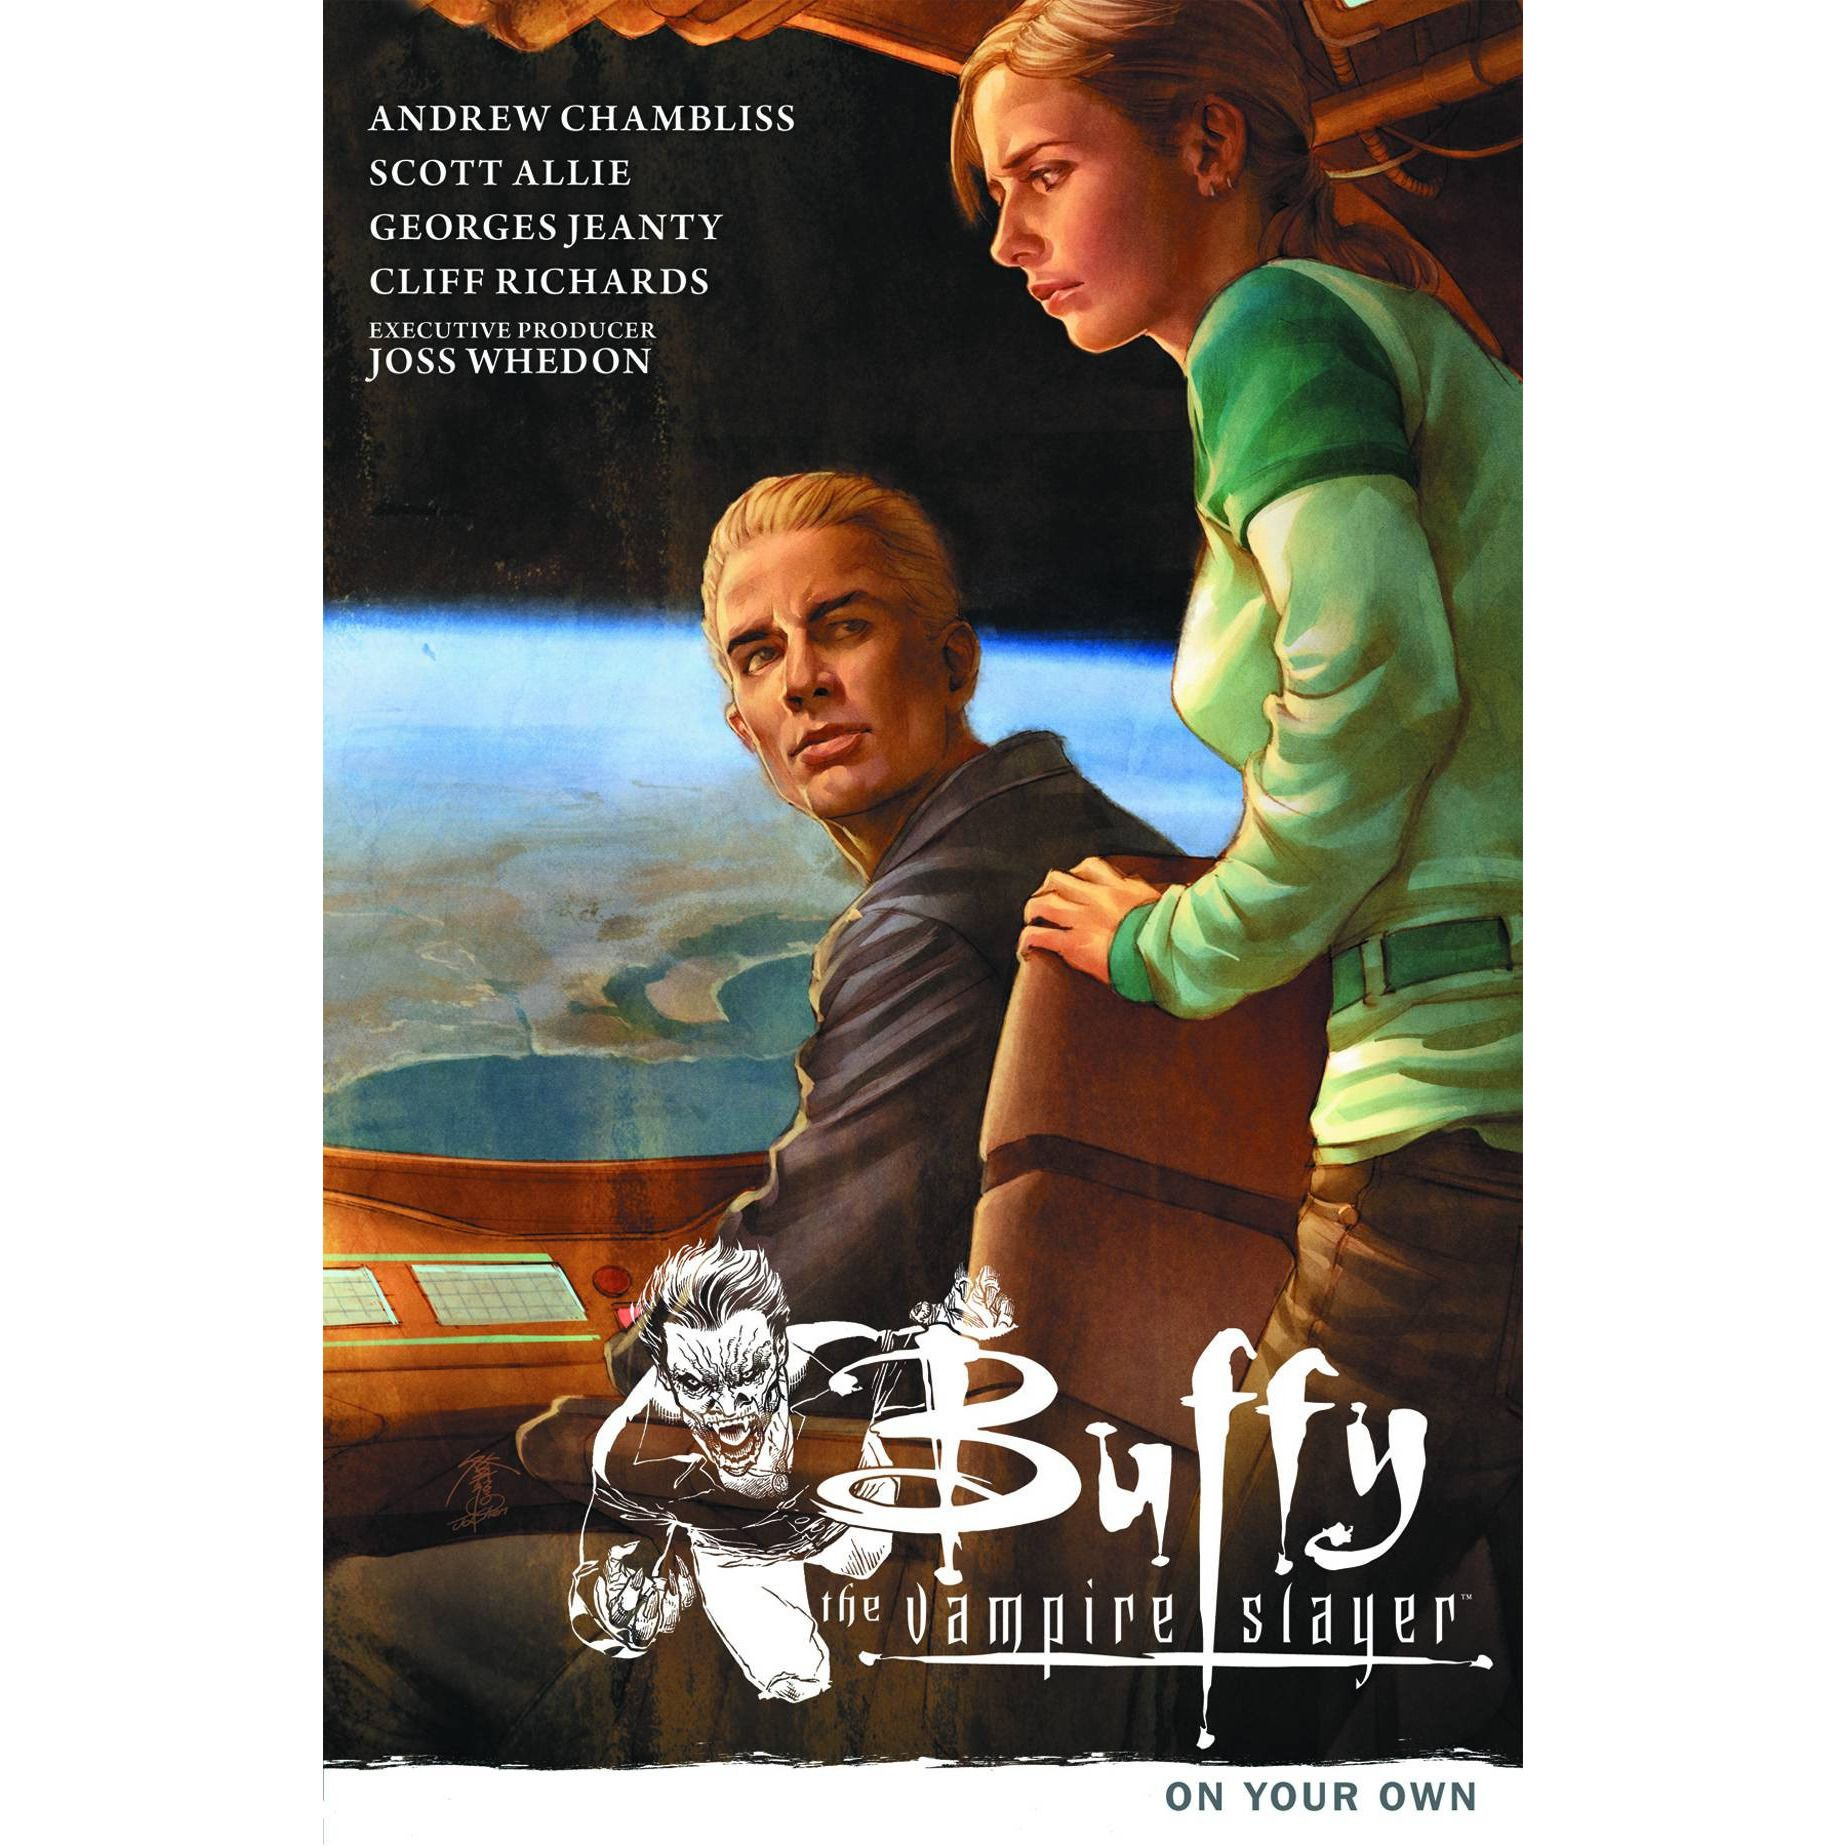 Buffy The Vampire Slayer Season 9 TP VOL 02 On Your Own Uncanny!